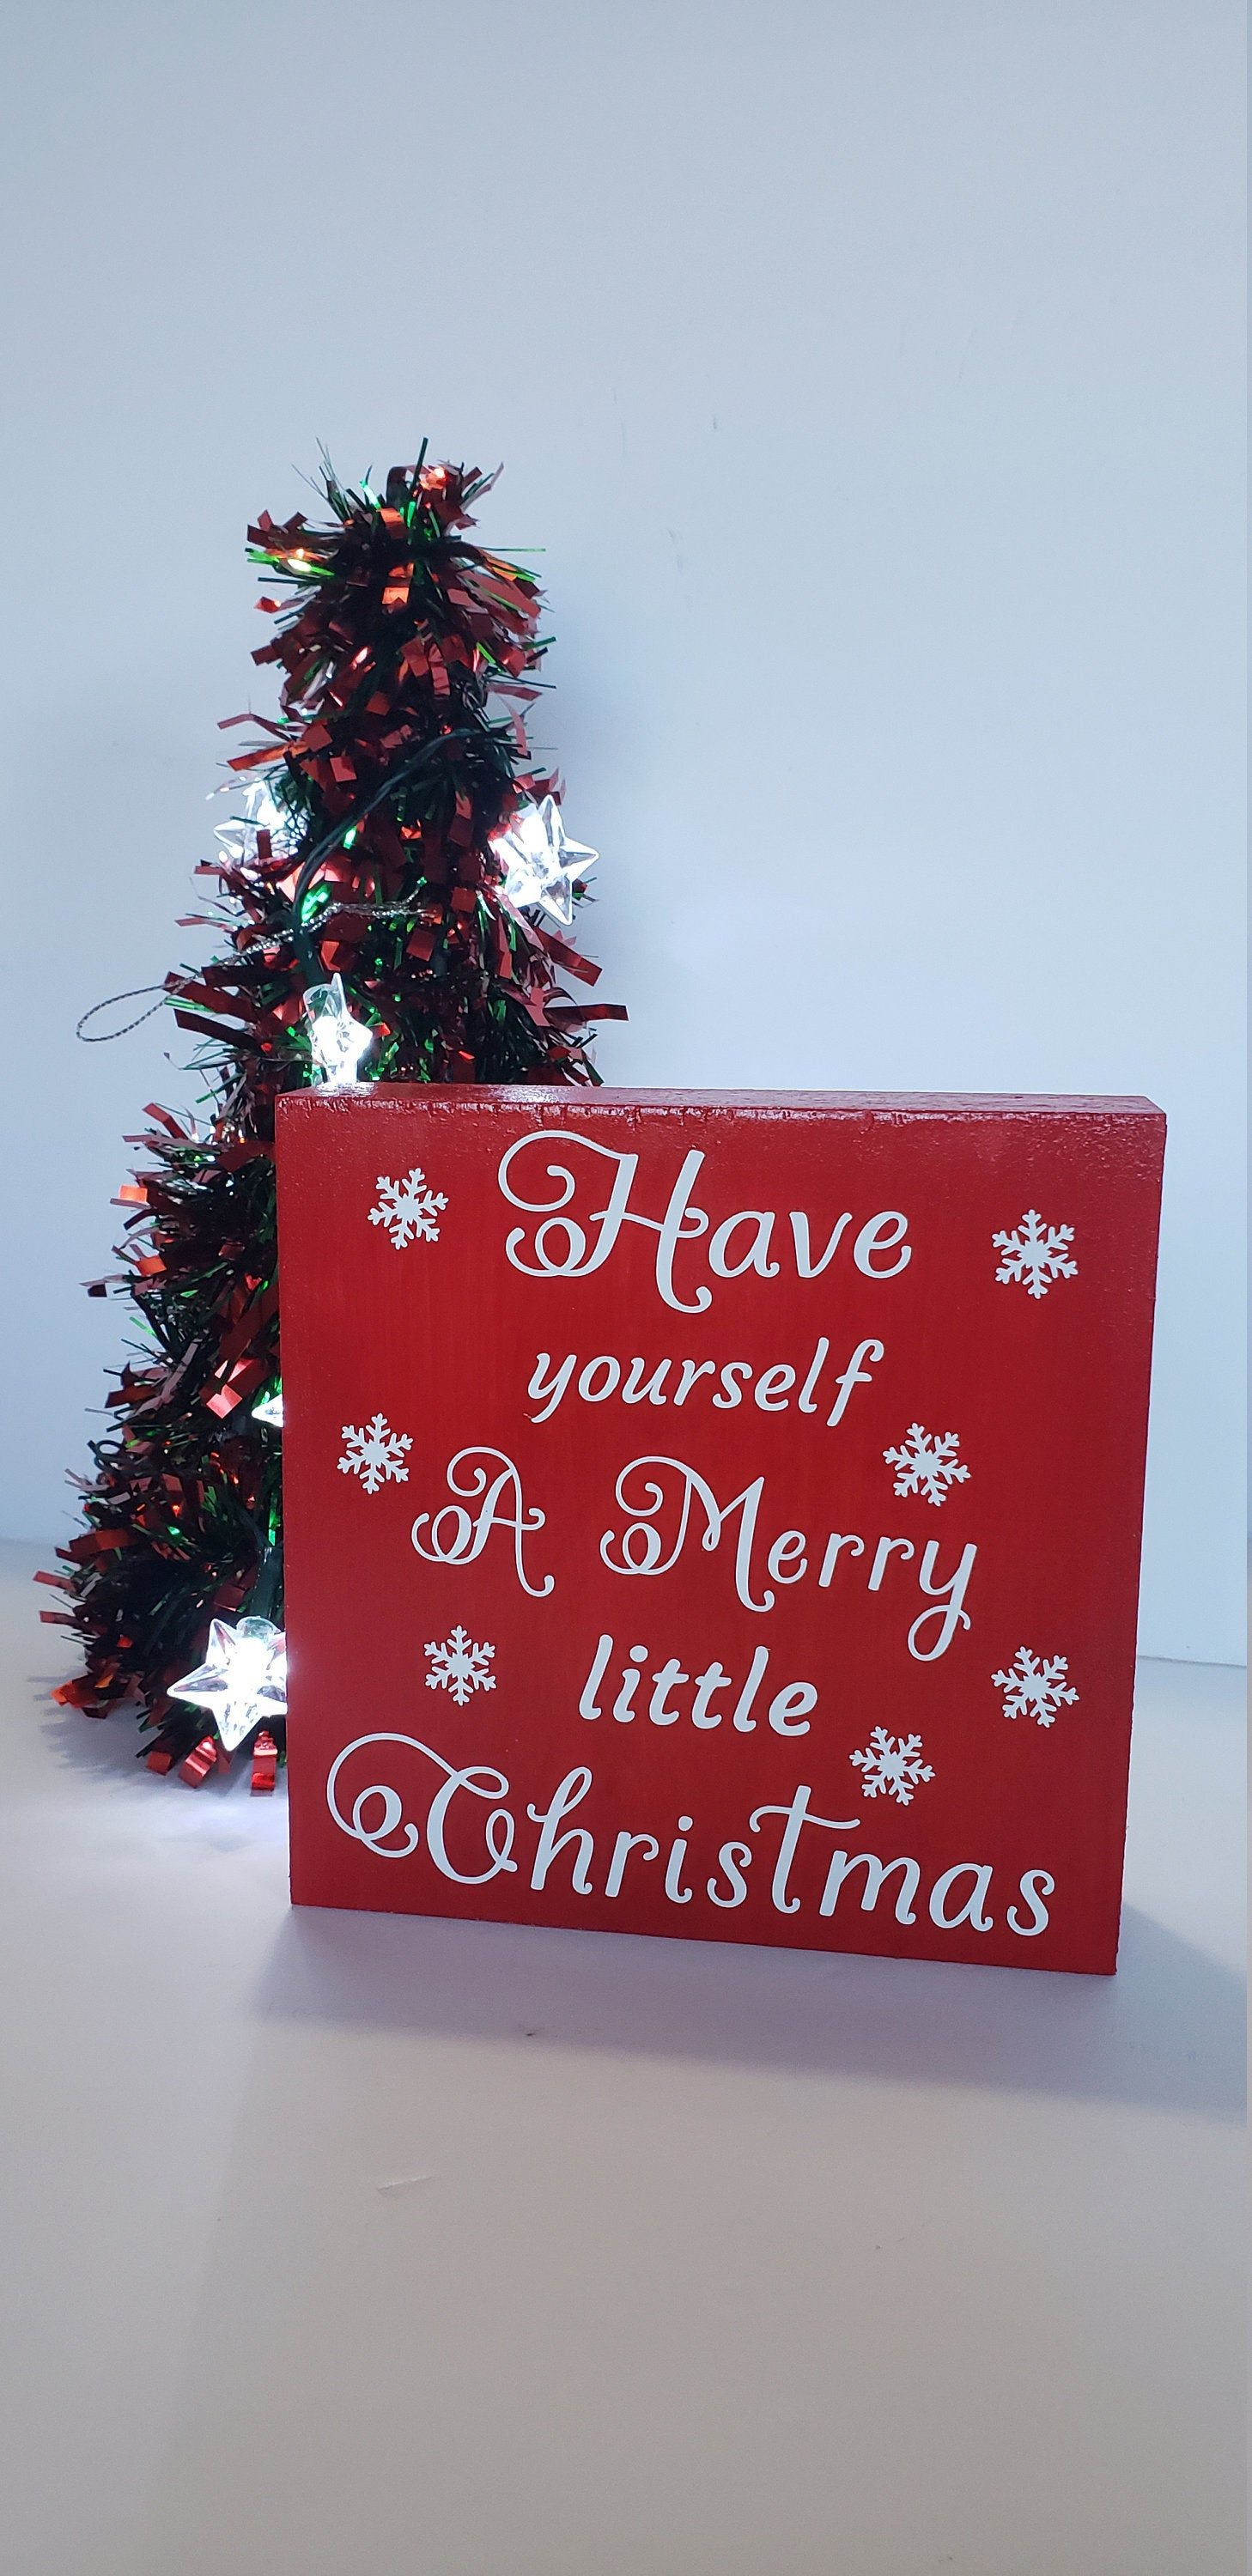 Need a gift for family or friends? take a look at this 6x6x1.5